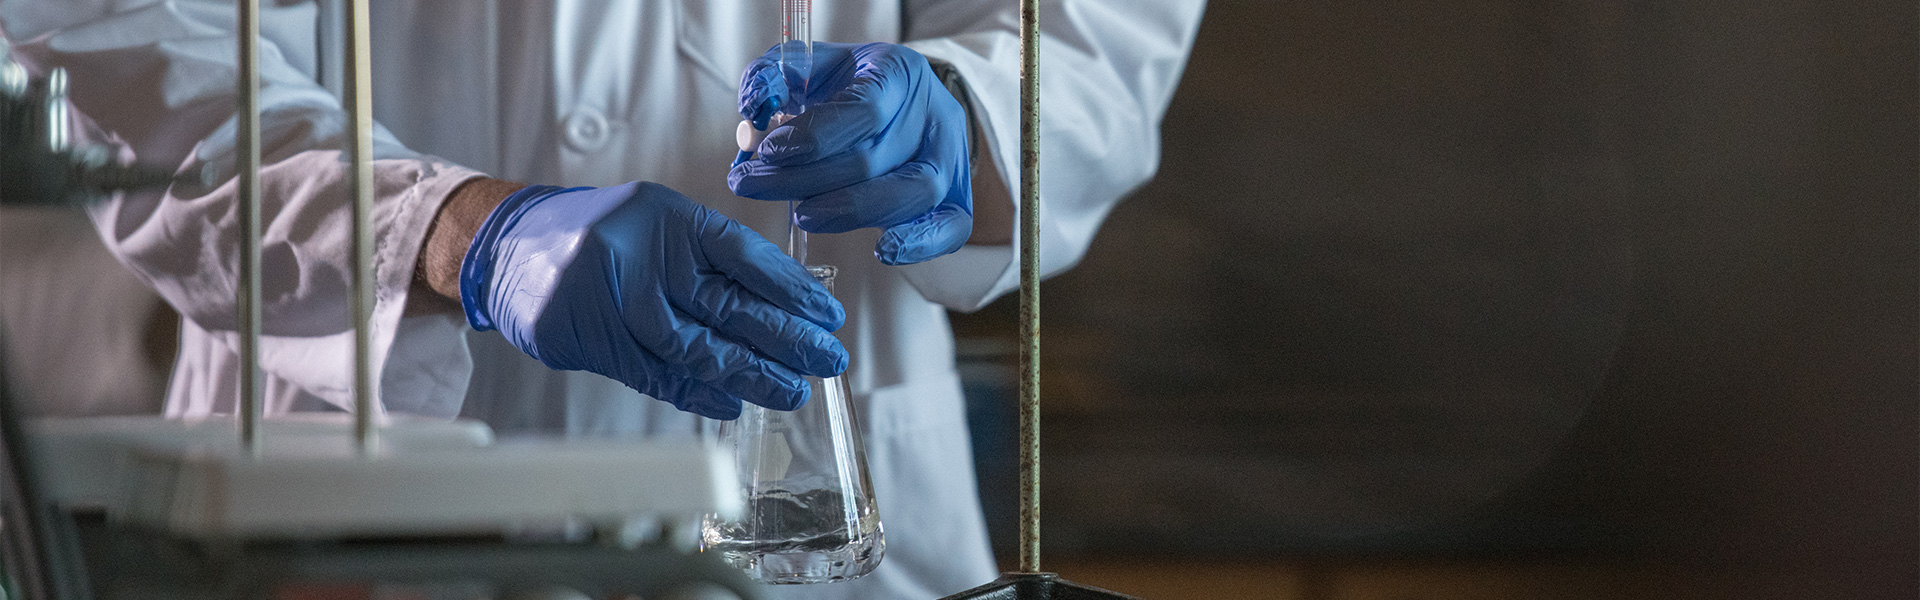 Working with chemicals in a lab